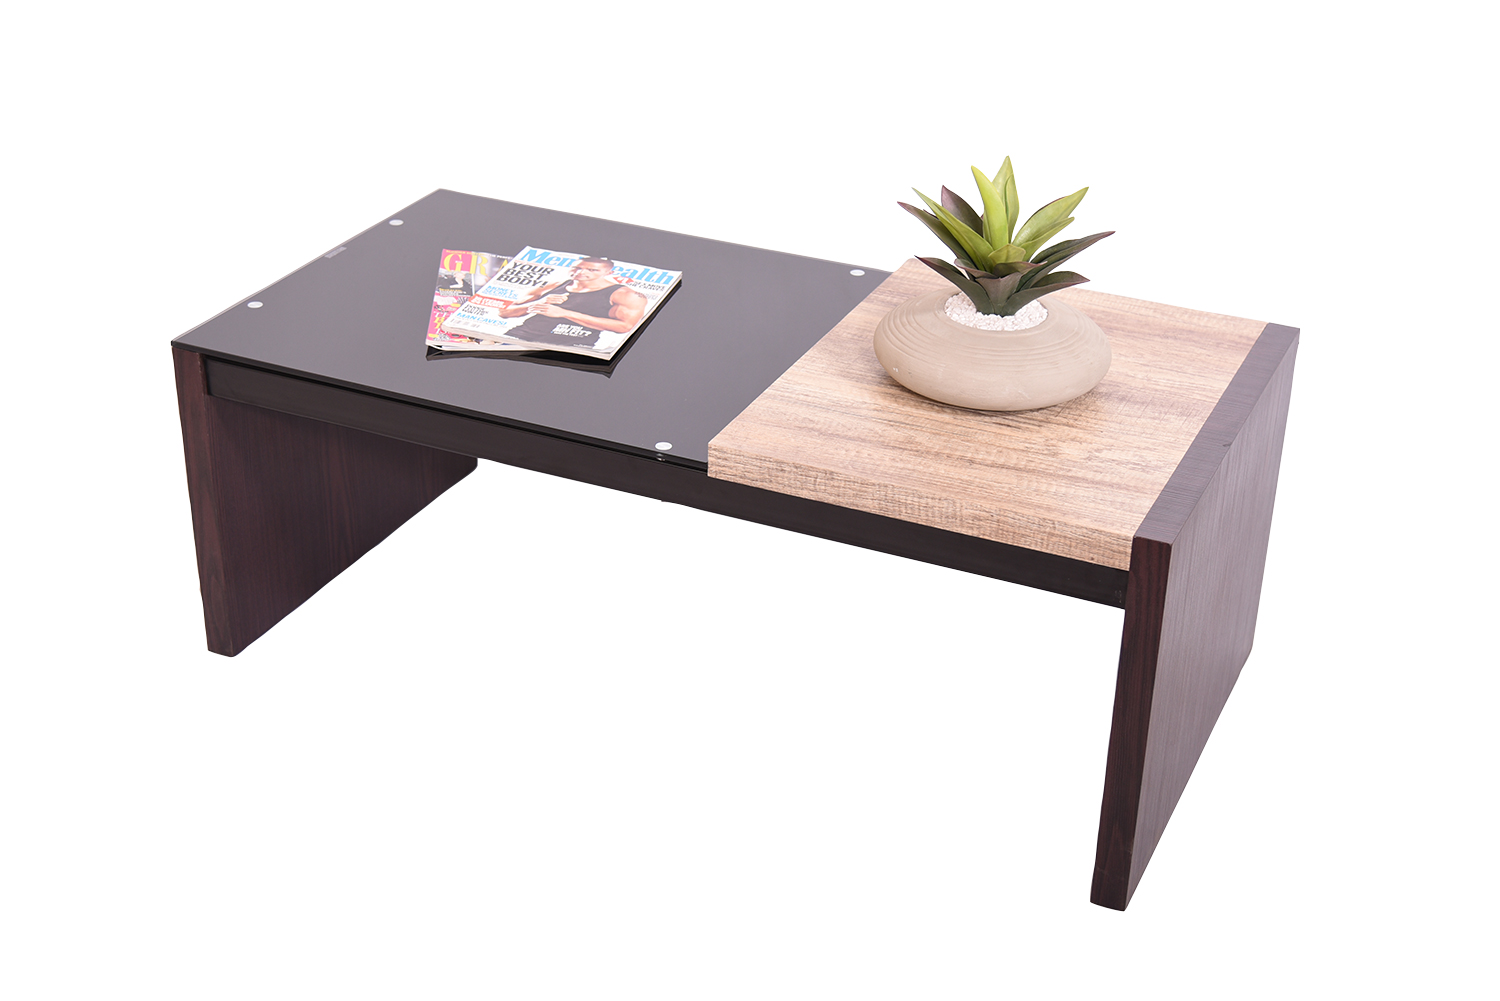 Tables brazilian coffee table was listed for r1 for Table th tf 00 02